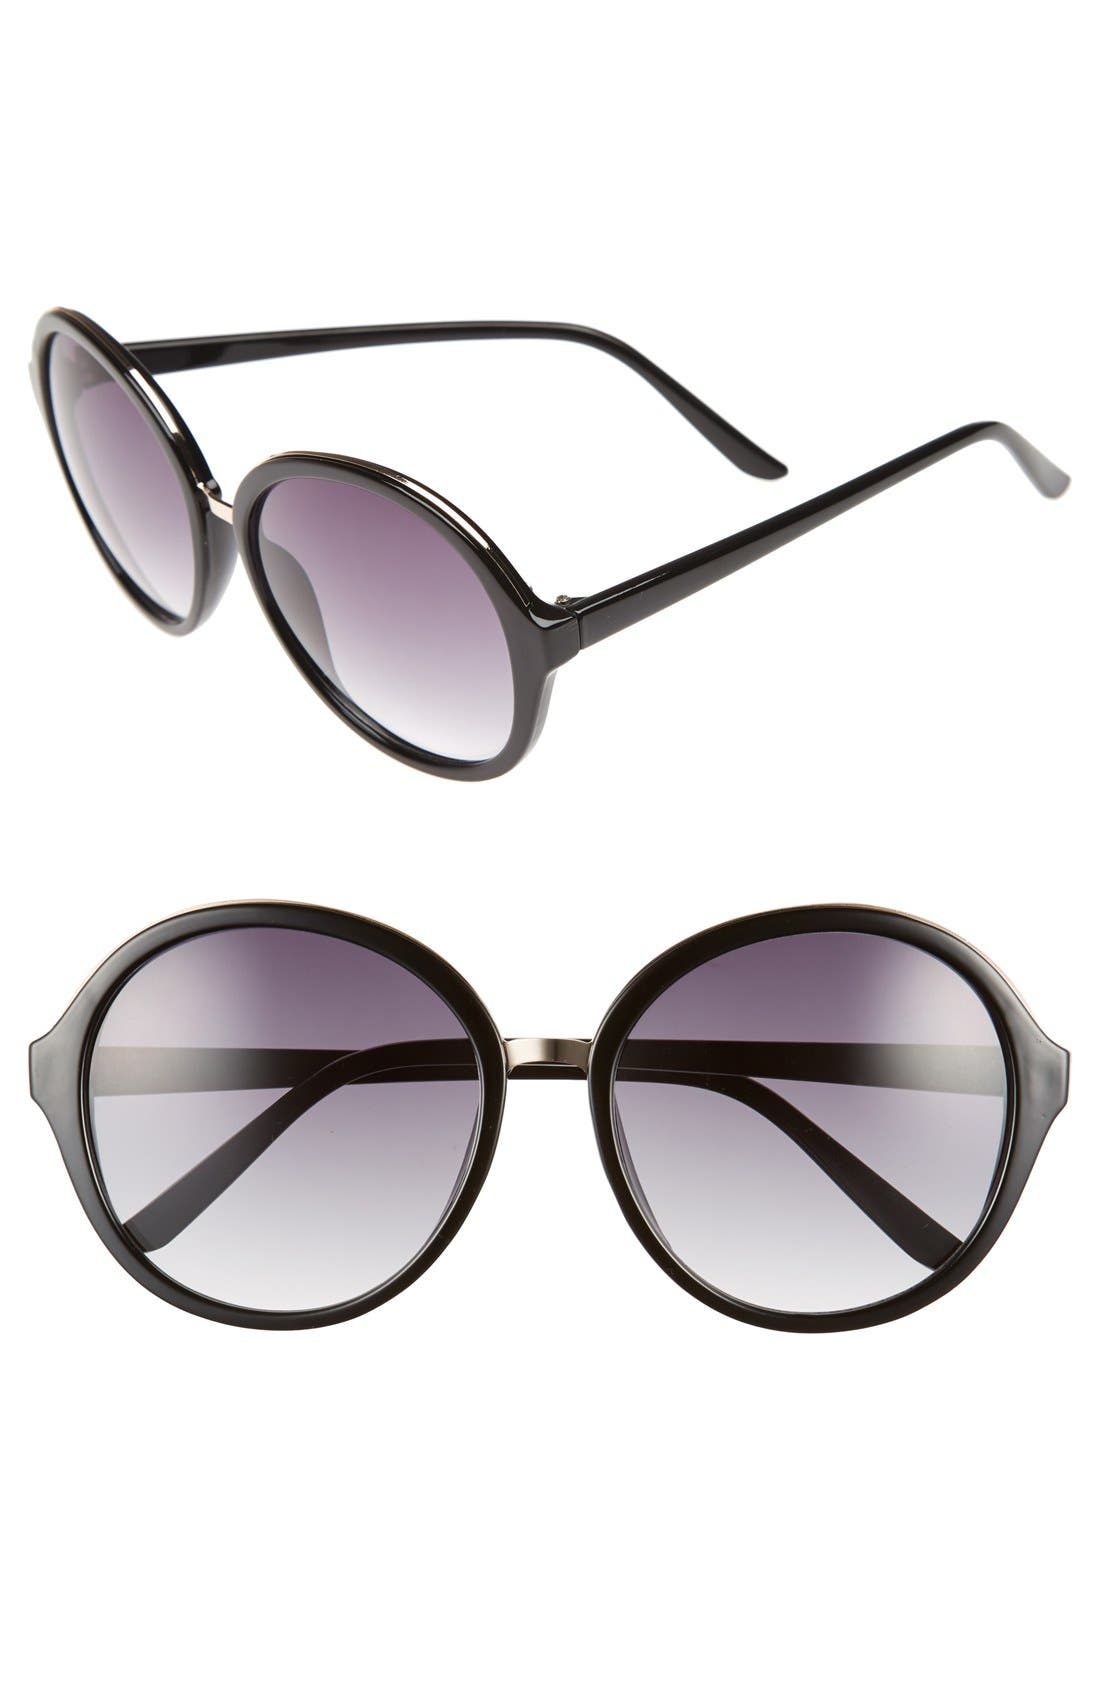 Main Image - BP. 60mm Oversized Round Sunglasses